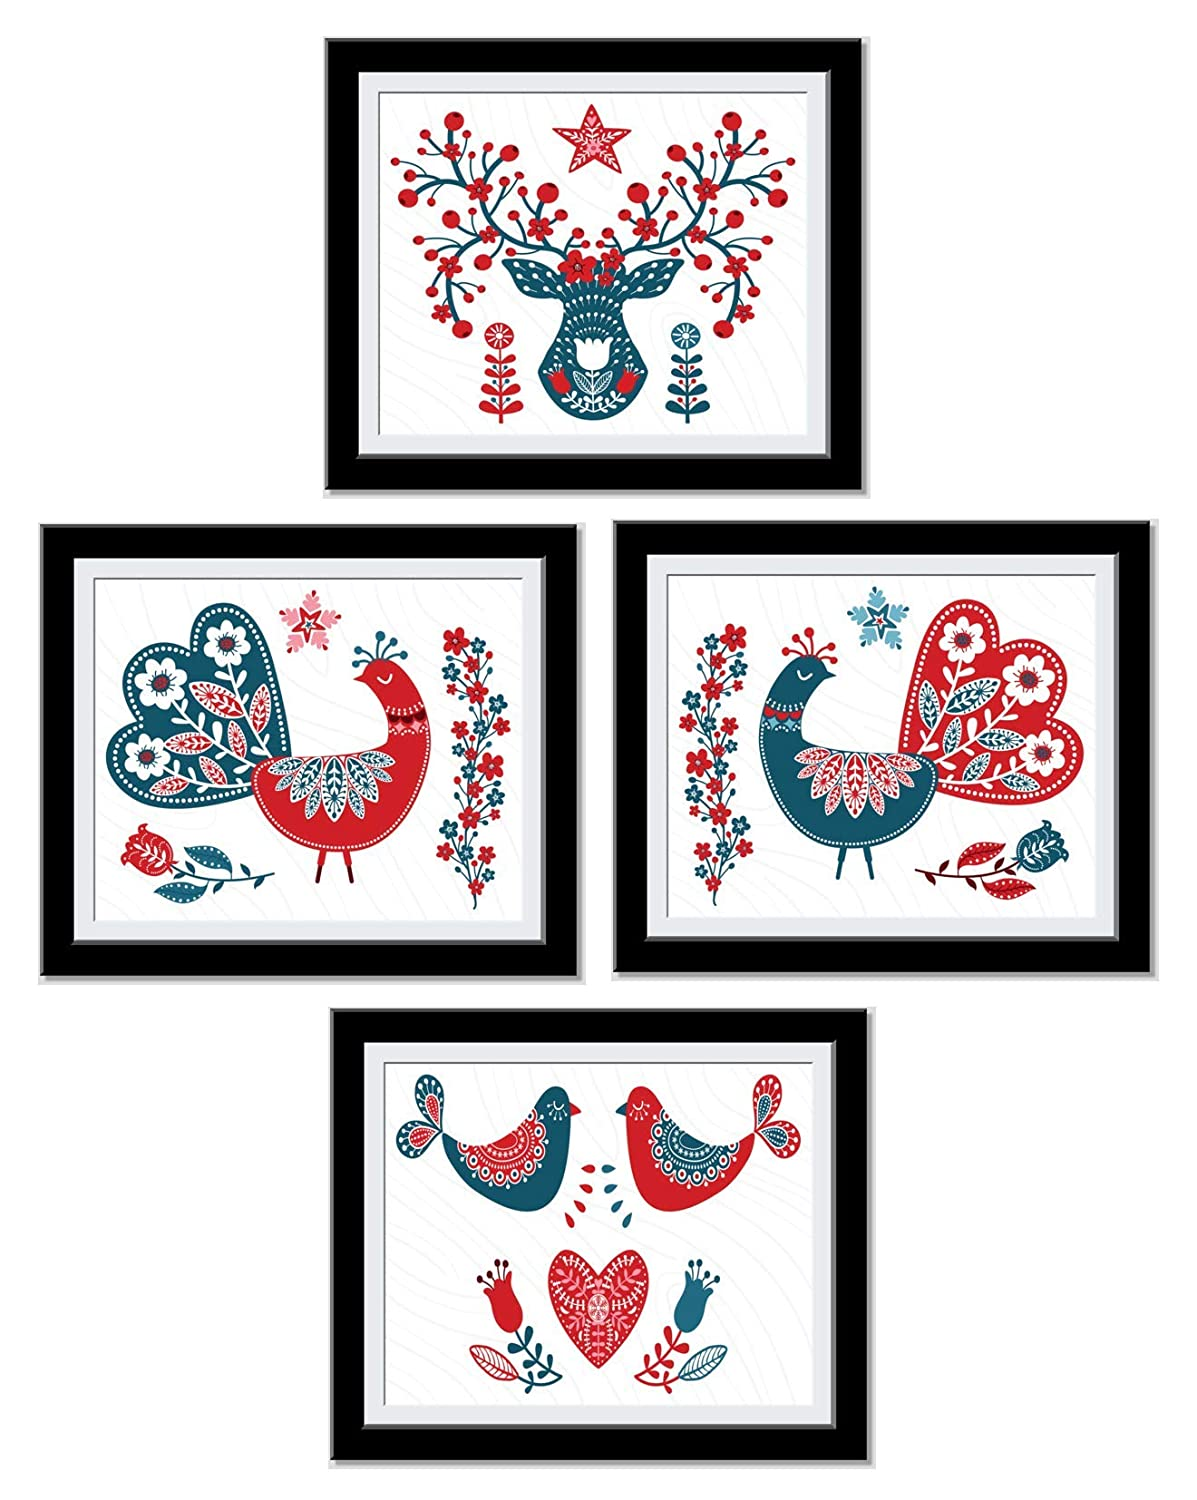 Peacock Wall Art - Beautiful and Decorative Bedroom Decor - House Warming Gift - Peacock gifts - Peacock wall Decor - Red Blue Festive Design - UnFramed…